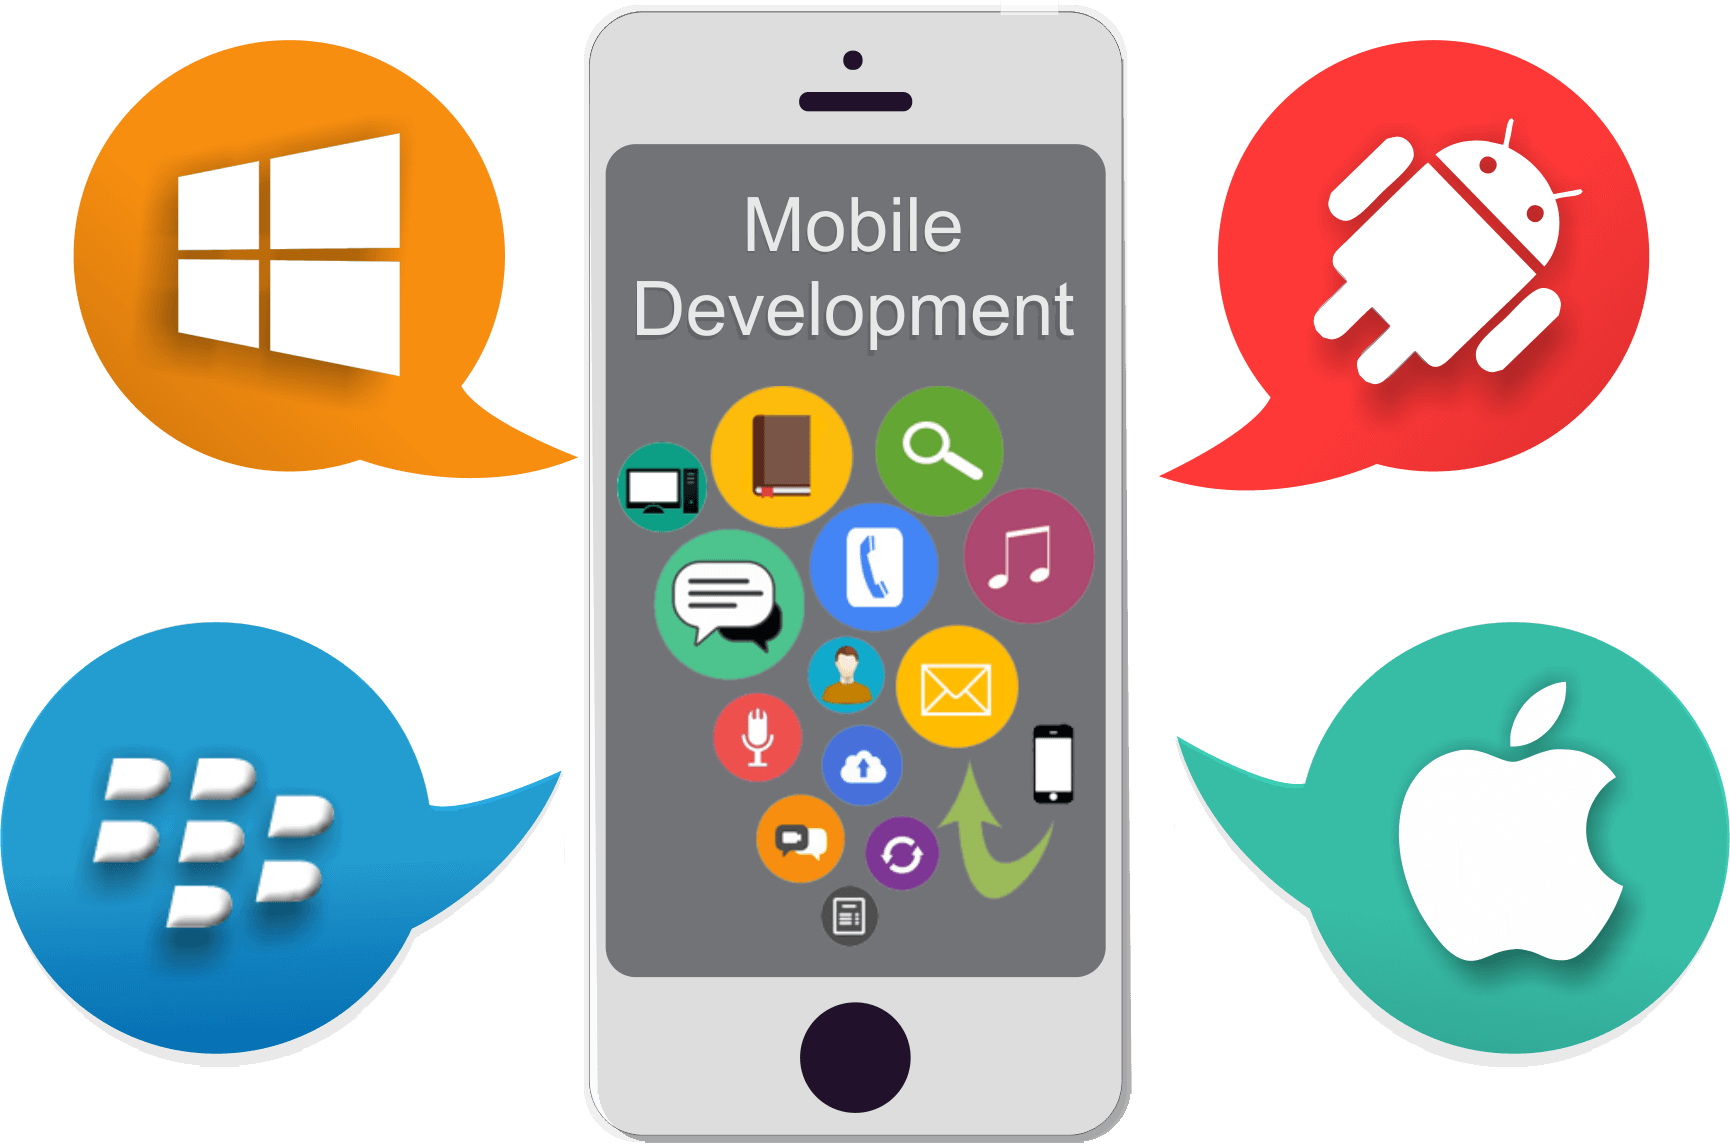 mobile app development, mobile app development company, mobile app development in india